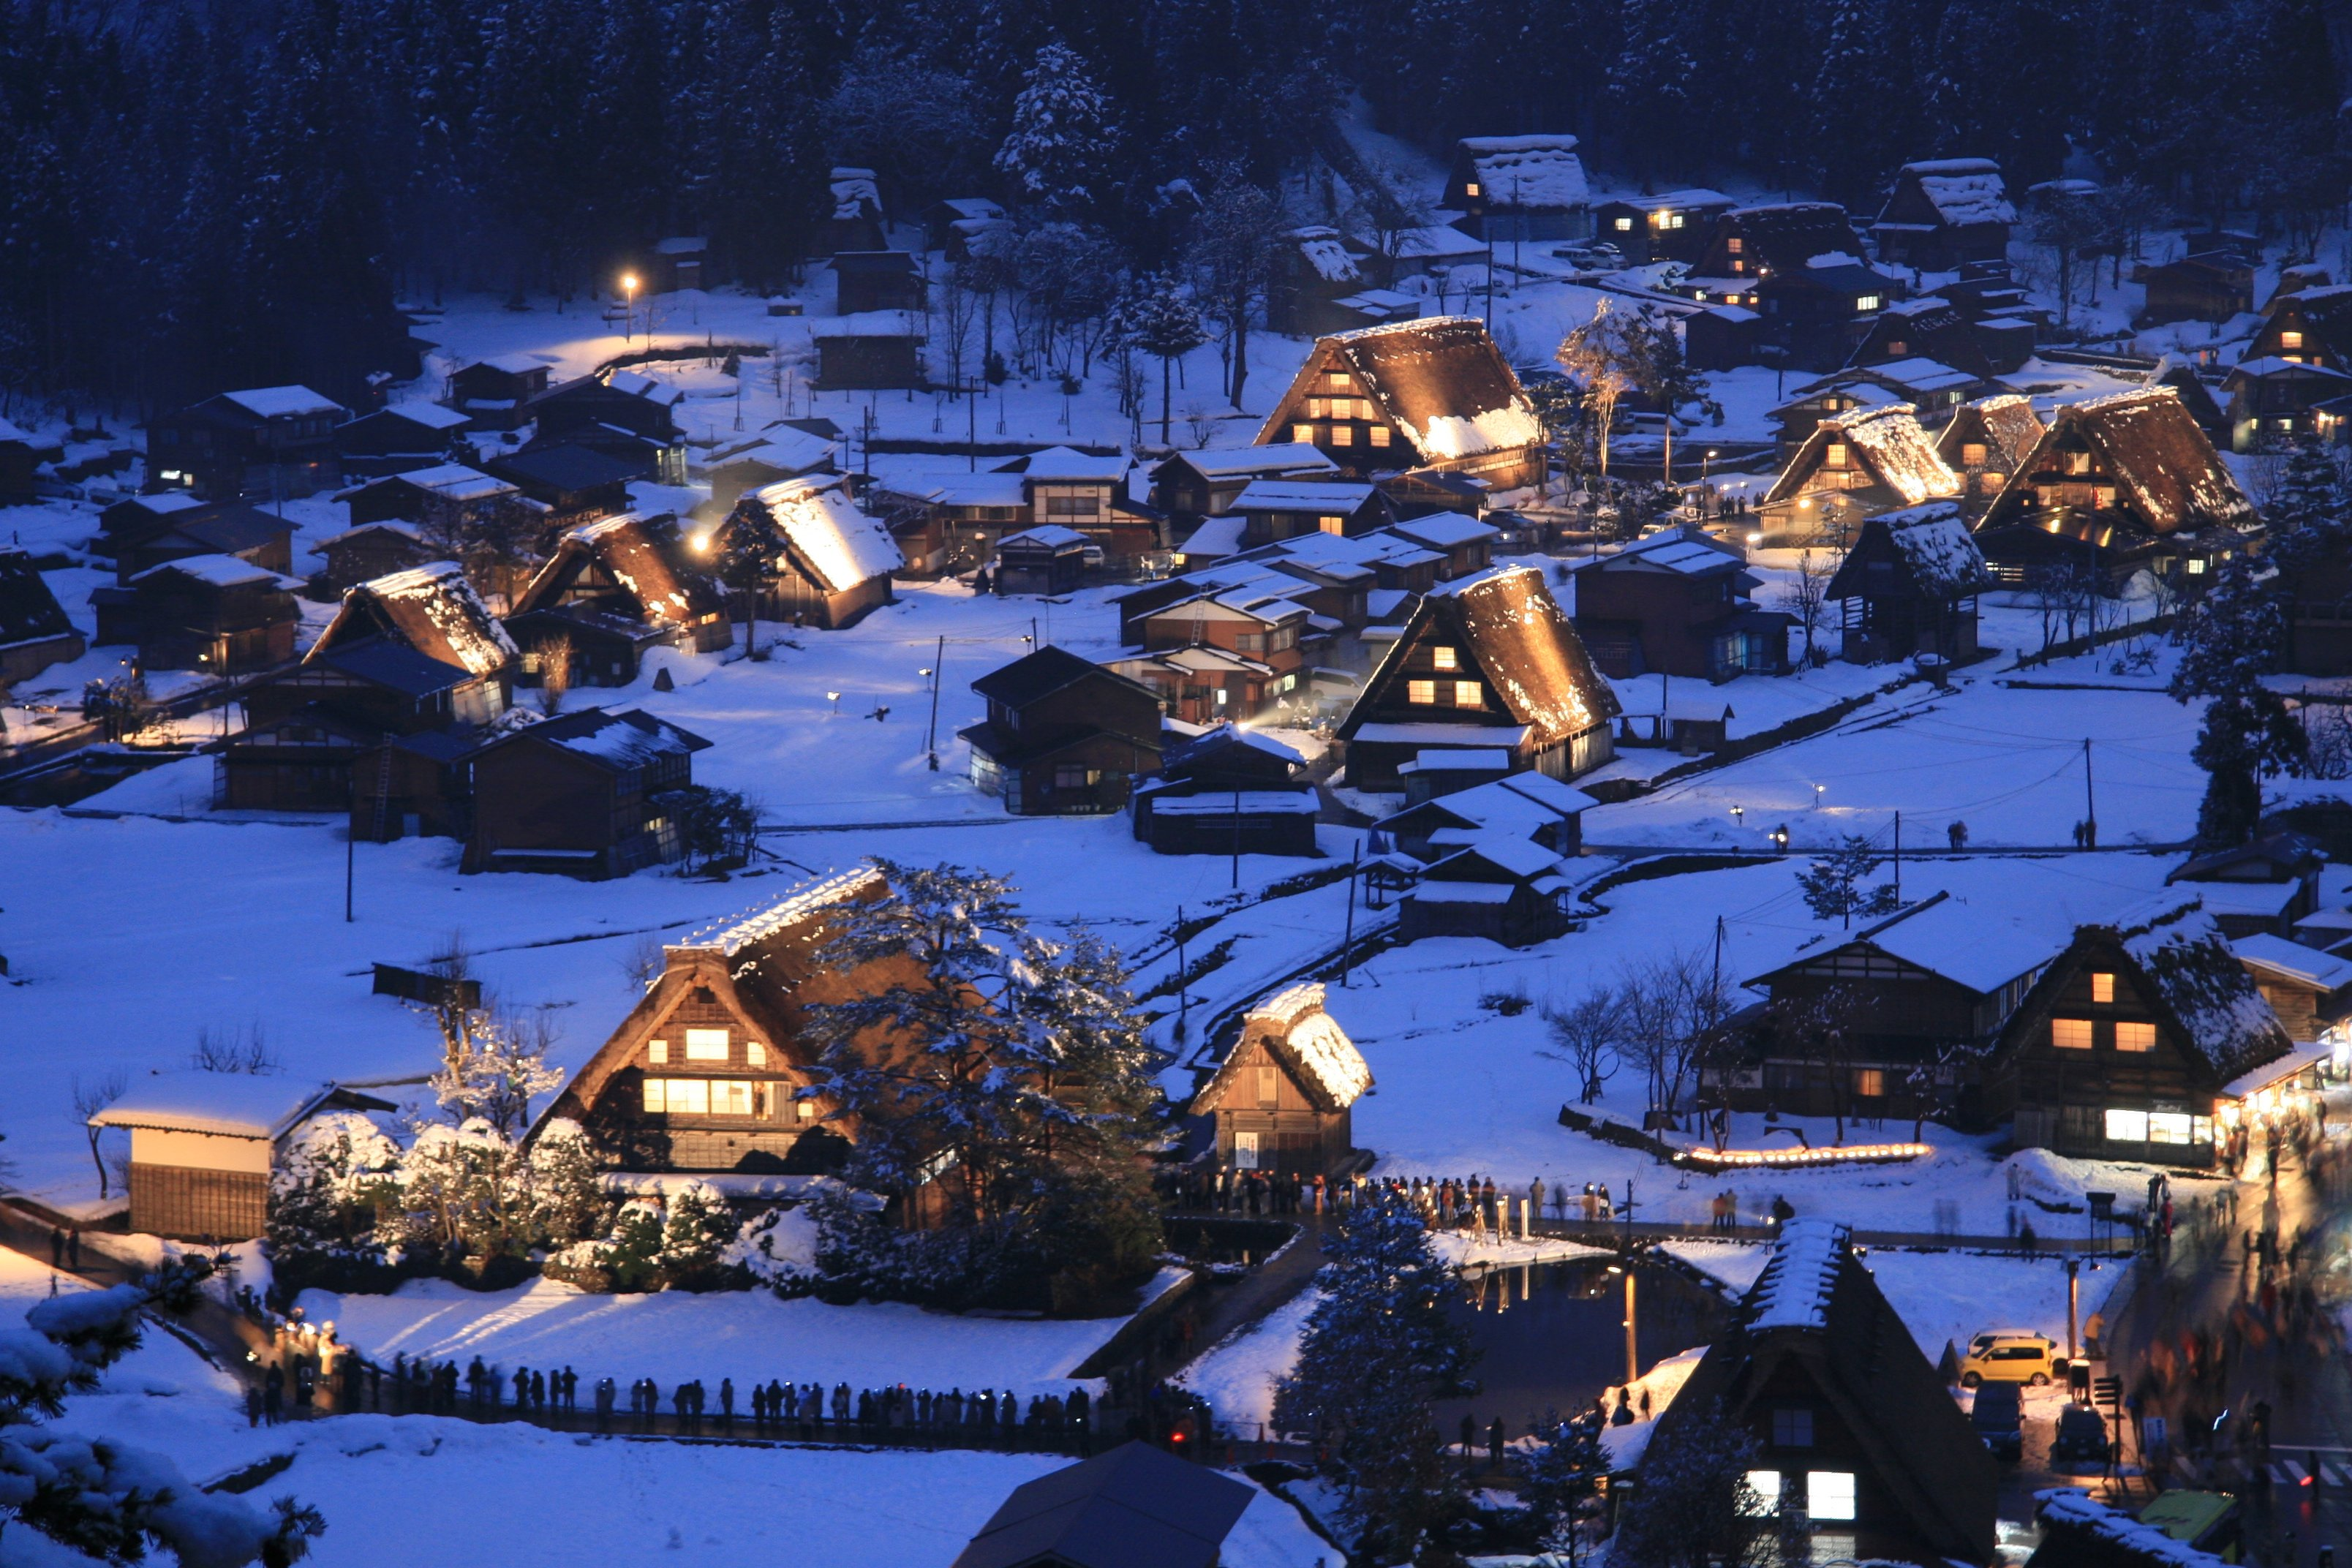 Village of Shirakawa, Tochigi Prefecture